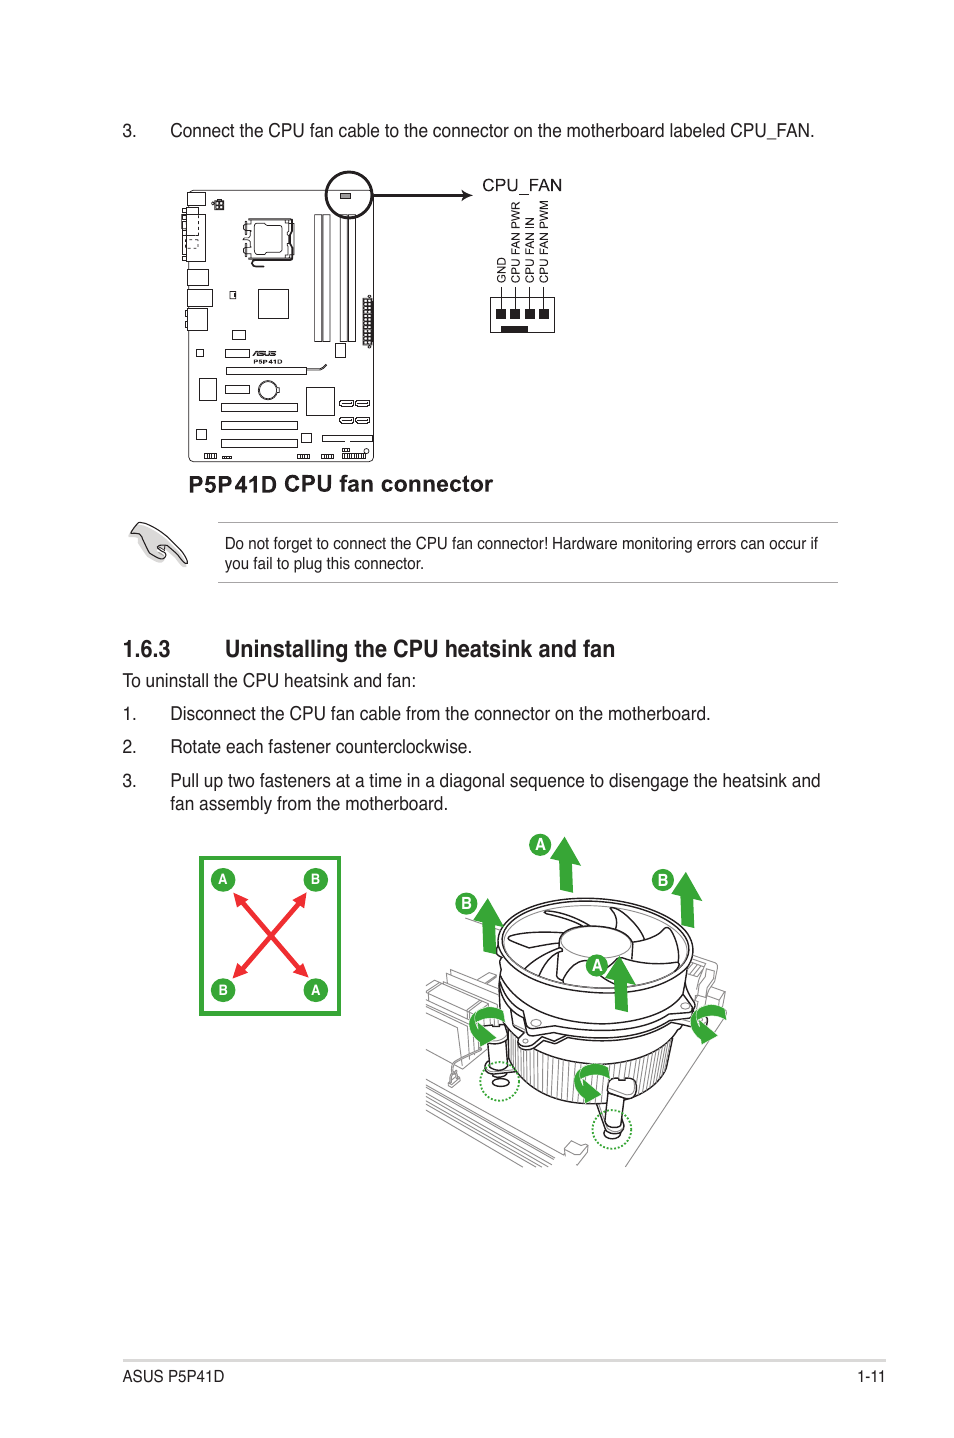 3 Uninstalling The Cpu Heatsink And Fan Labeled Motherboard Diagram 11 Asus P5p41d User Manual Page 21 58